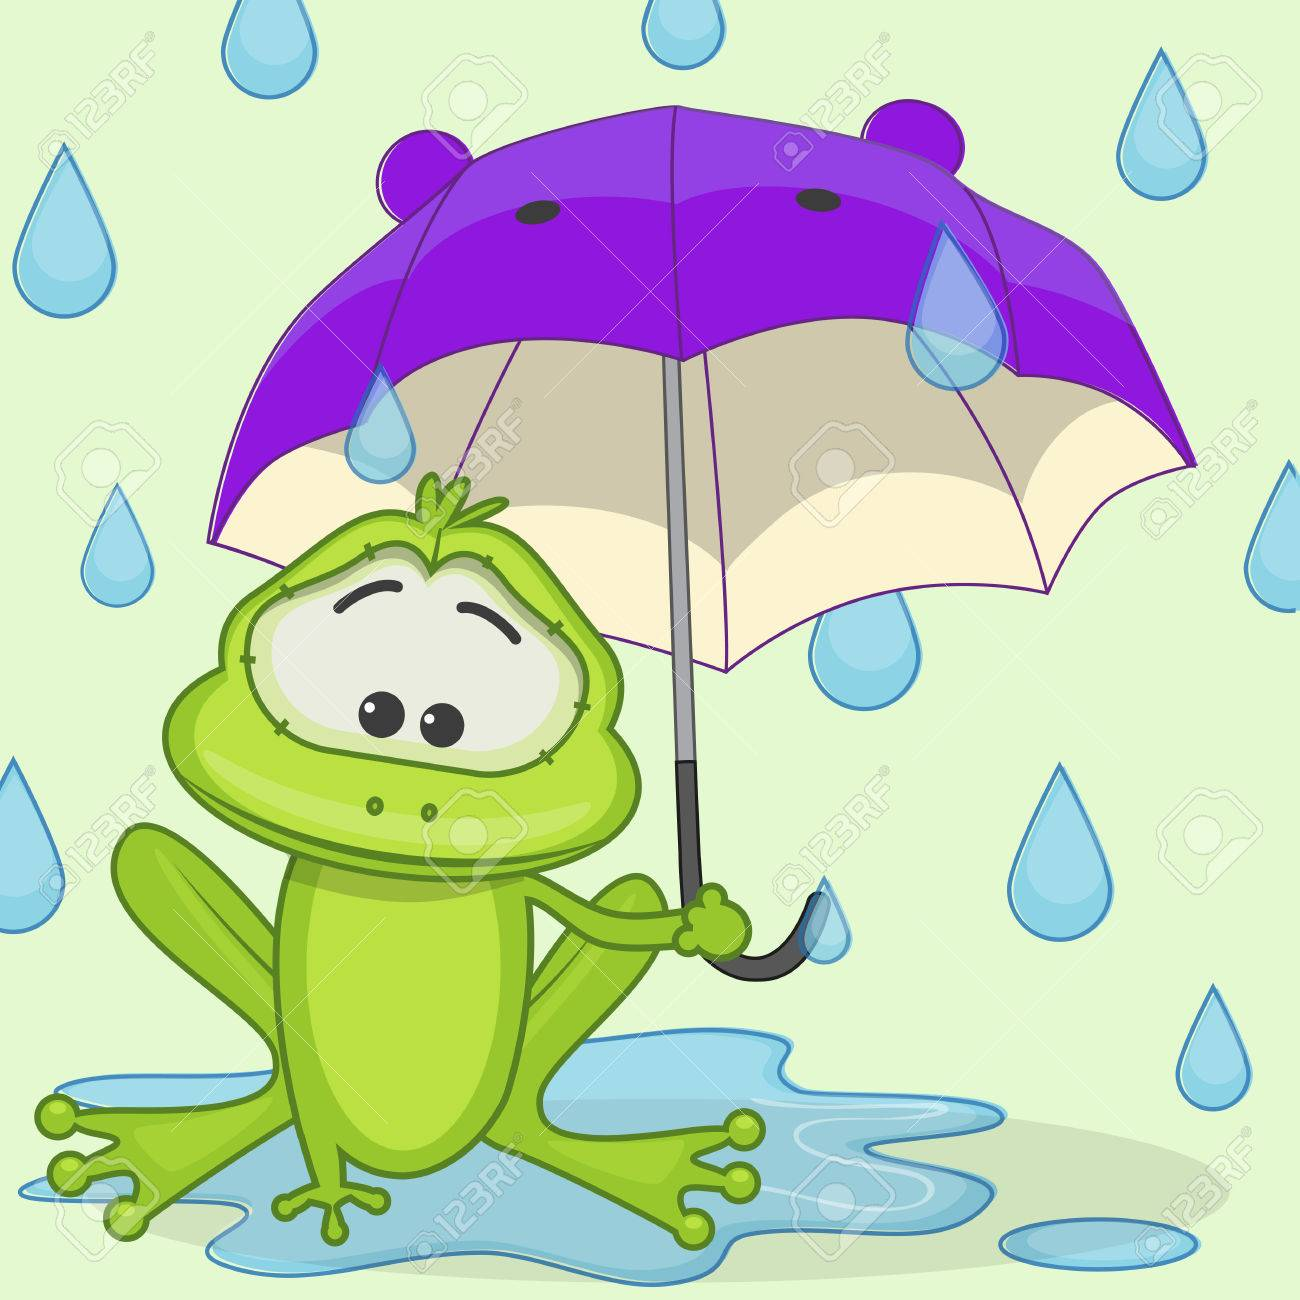 Greeting card Frog with umbrella.